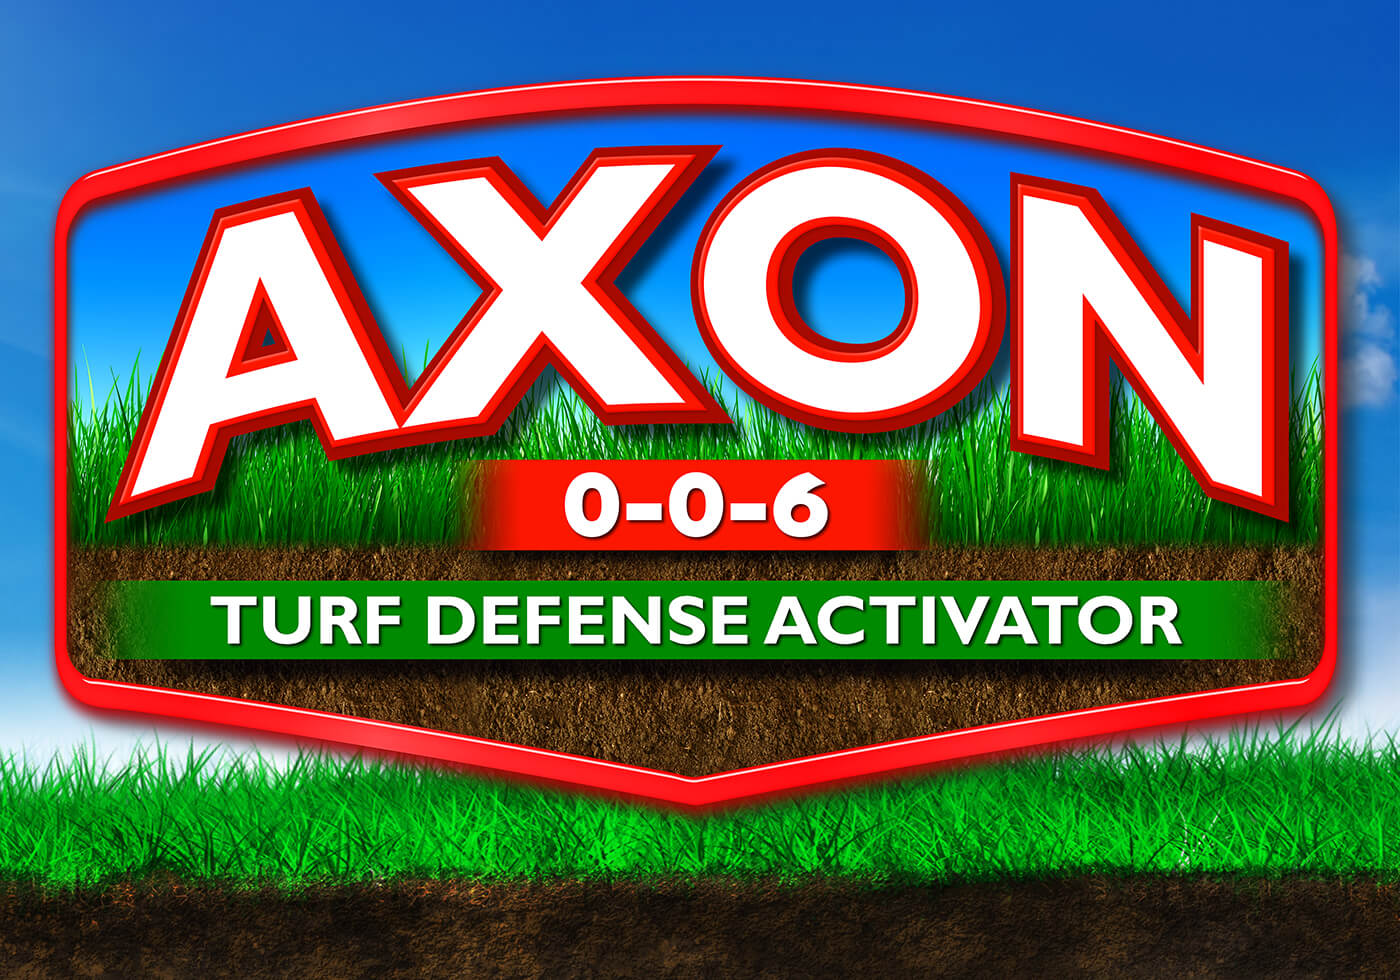 large red axon 3-0-6 logo turf defense activator over blue sky background grass and dirt